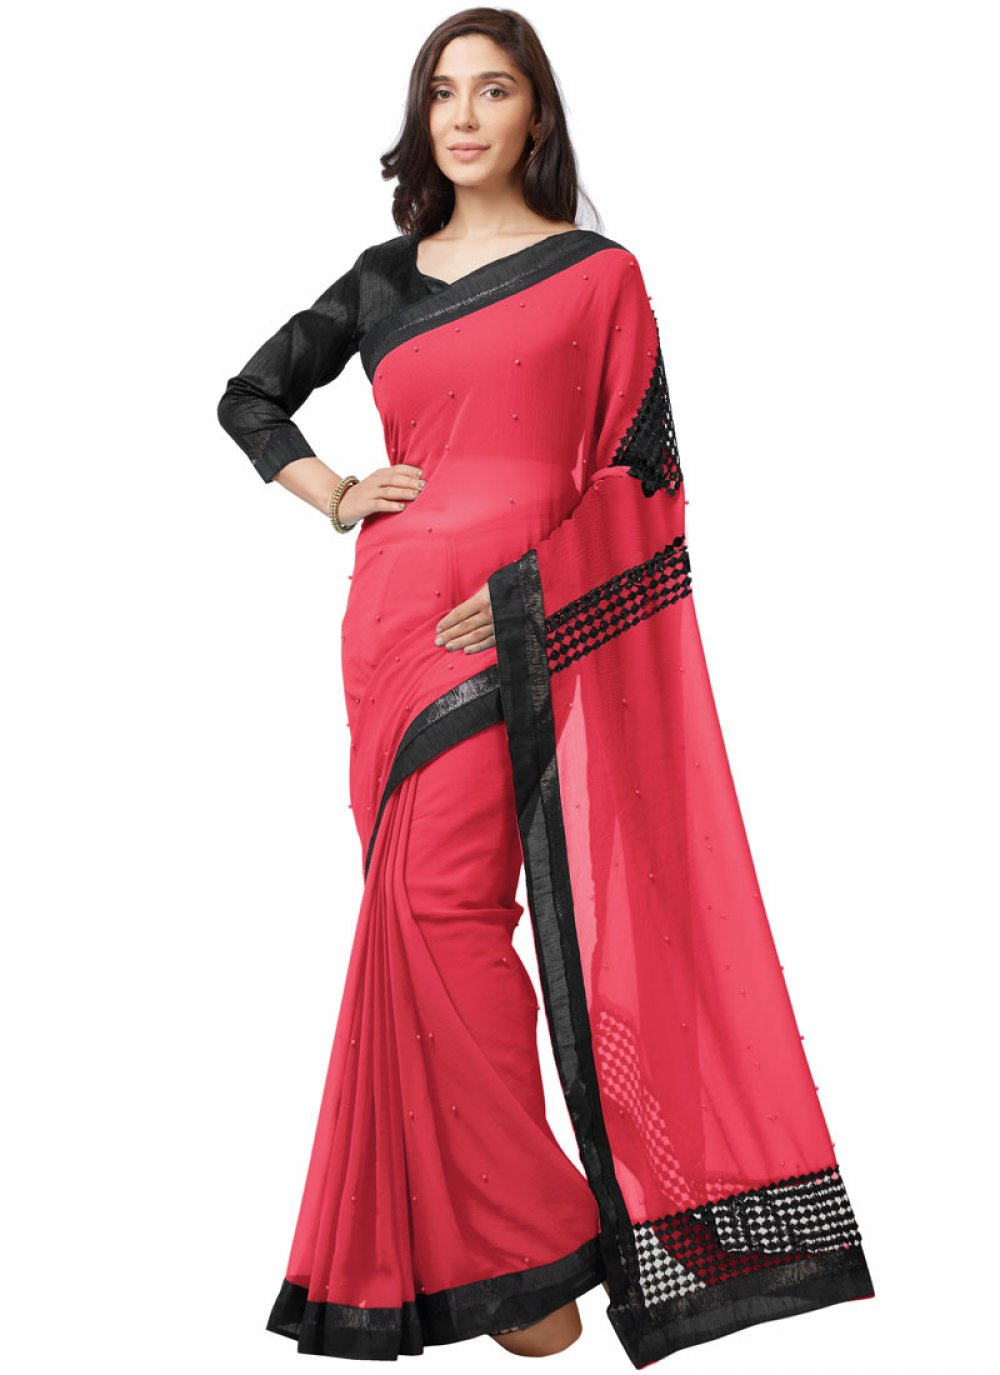 Lace Faux Chiffon Casual Saree